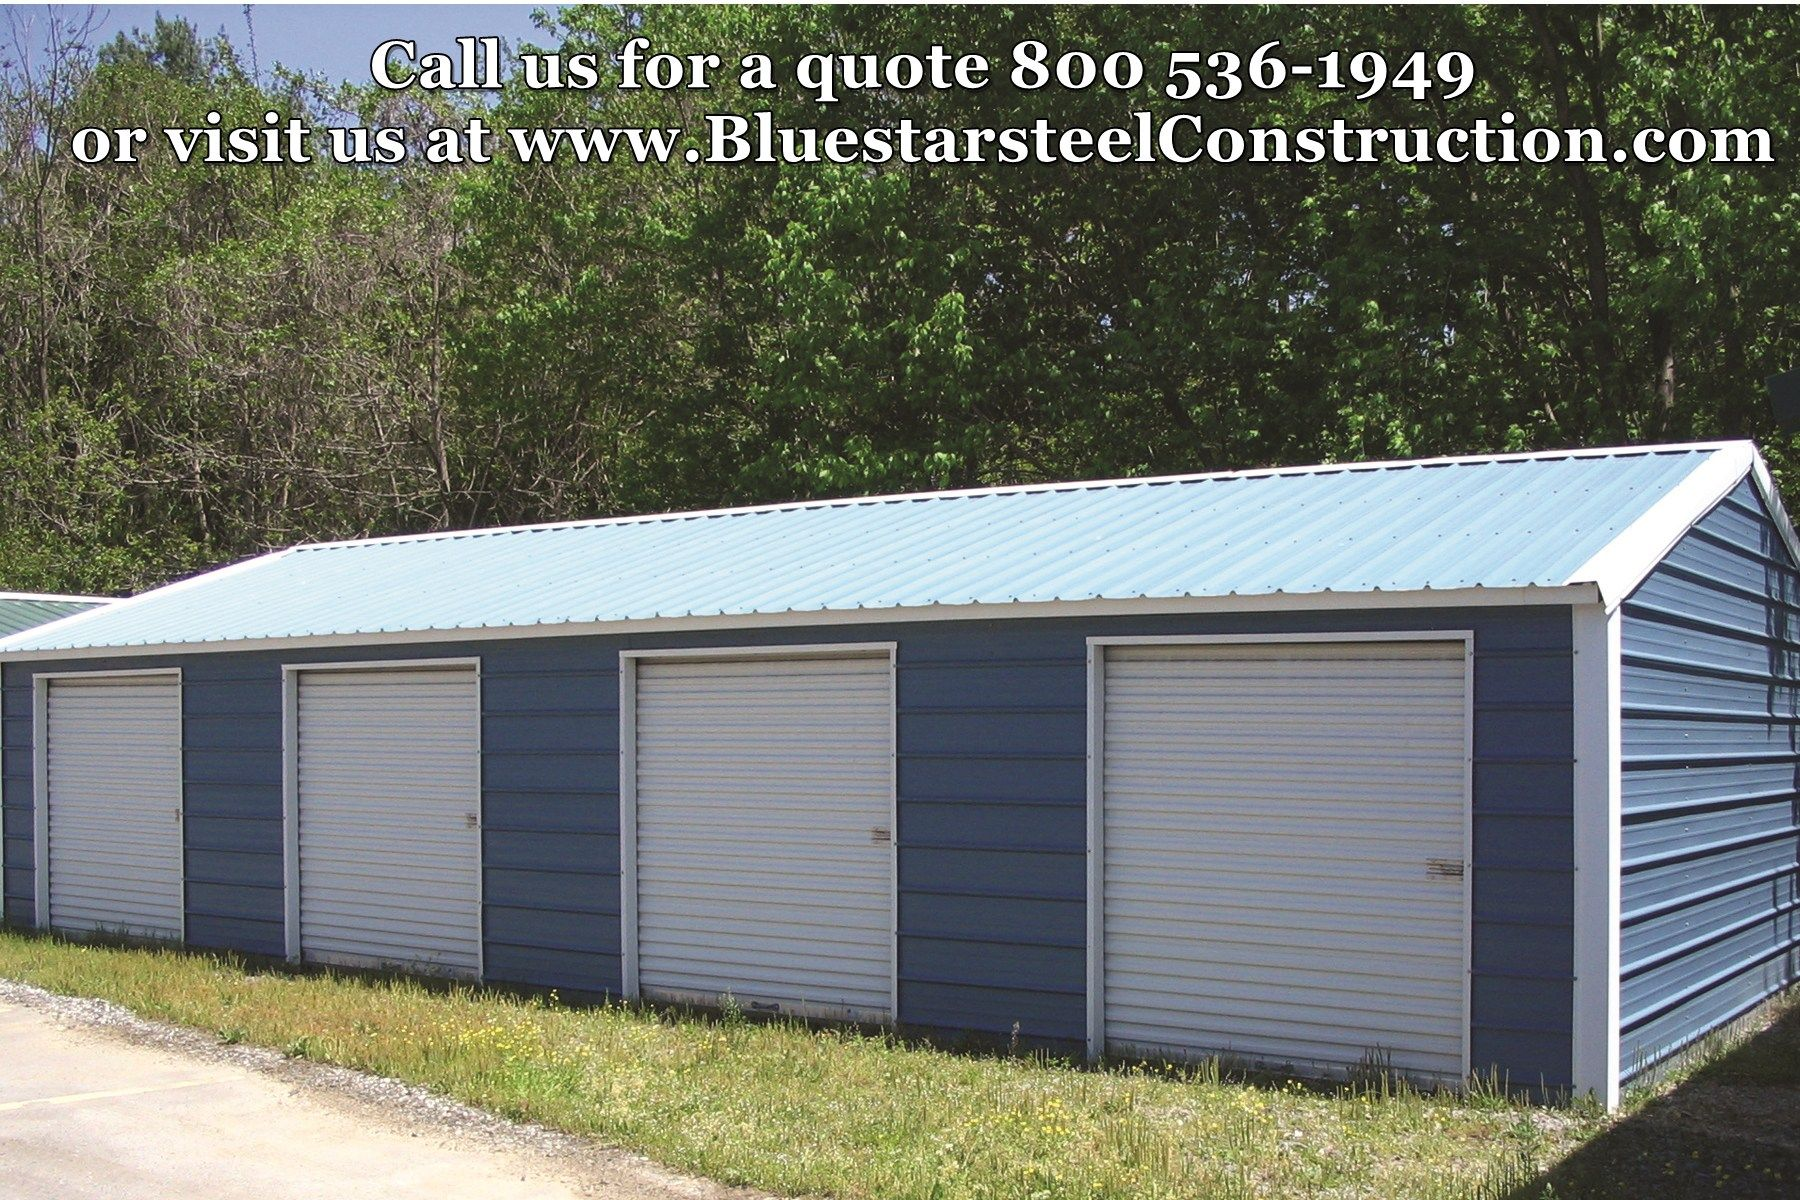 Metal building - 4 car garage - low cost steel garage - call 1-800 ...